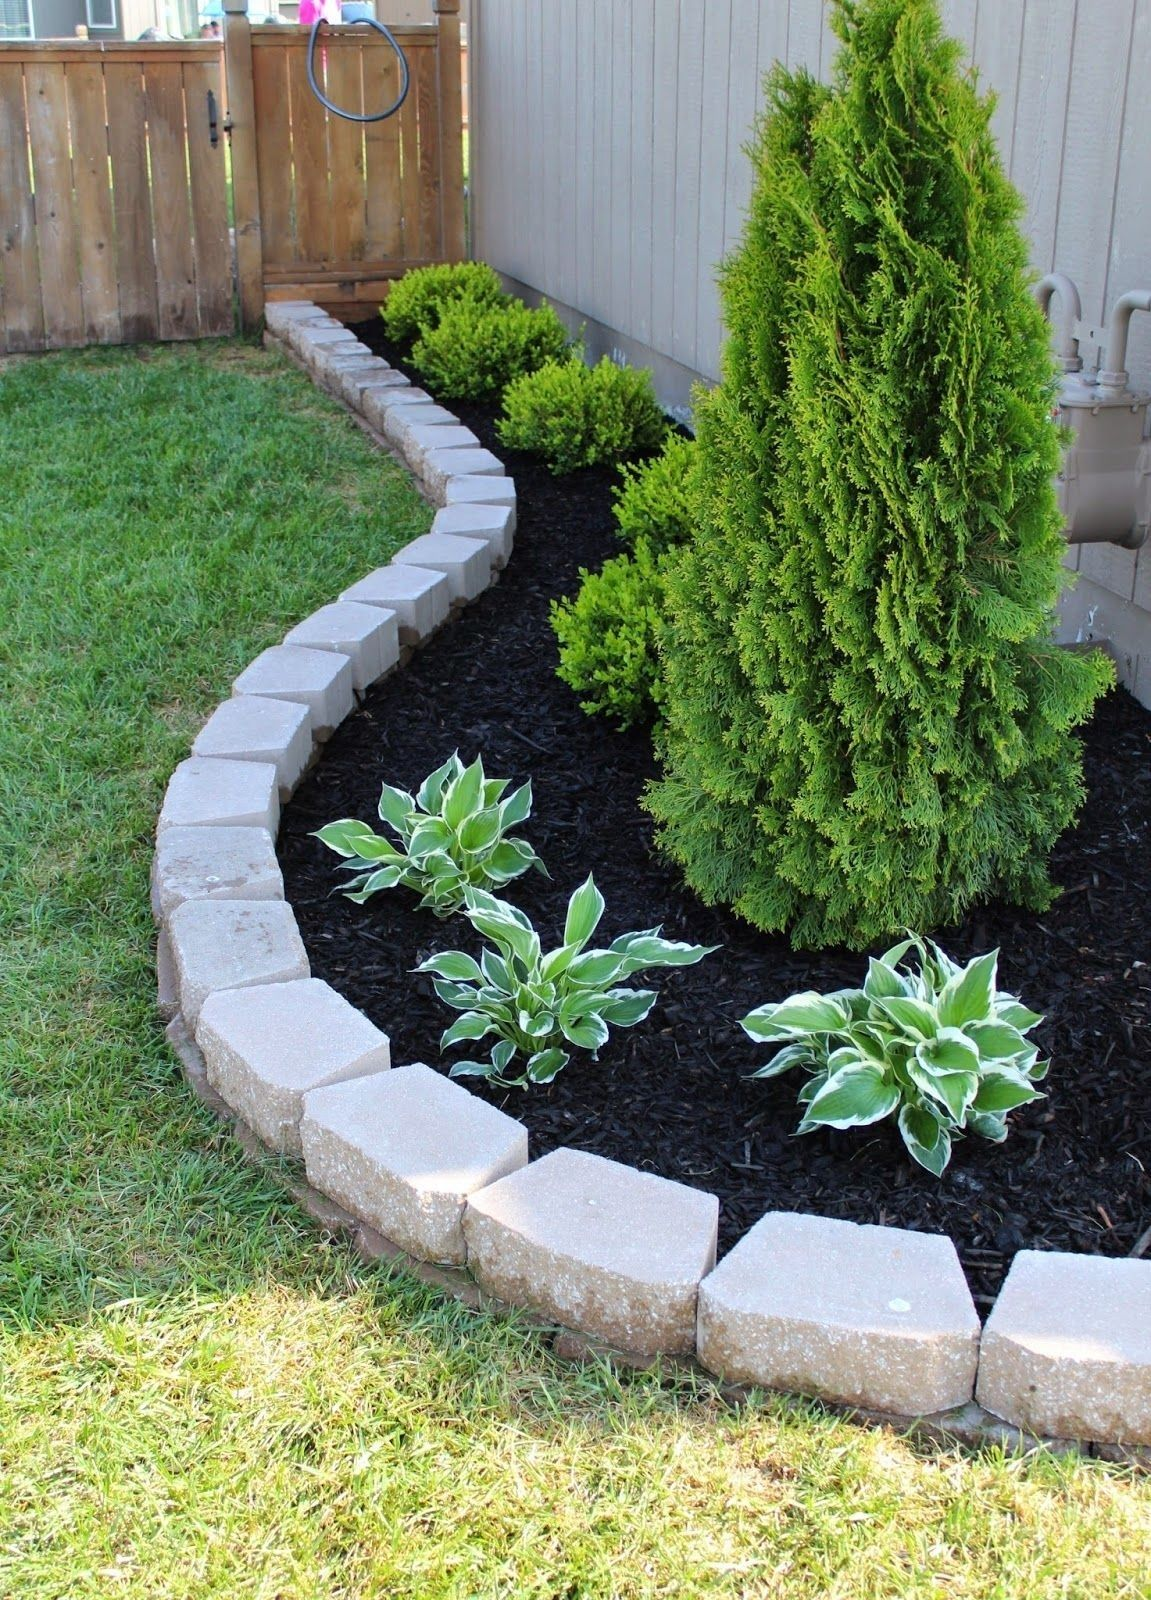 The Perfect Best Of Landscaping Ideas On Pinterest Cn00e2 Https Canadagoosesvip Top Best Of La Easy Landscaping Front Yard Landscaping Design Diy Landscaping